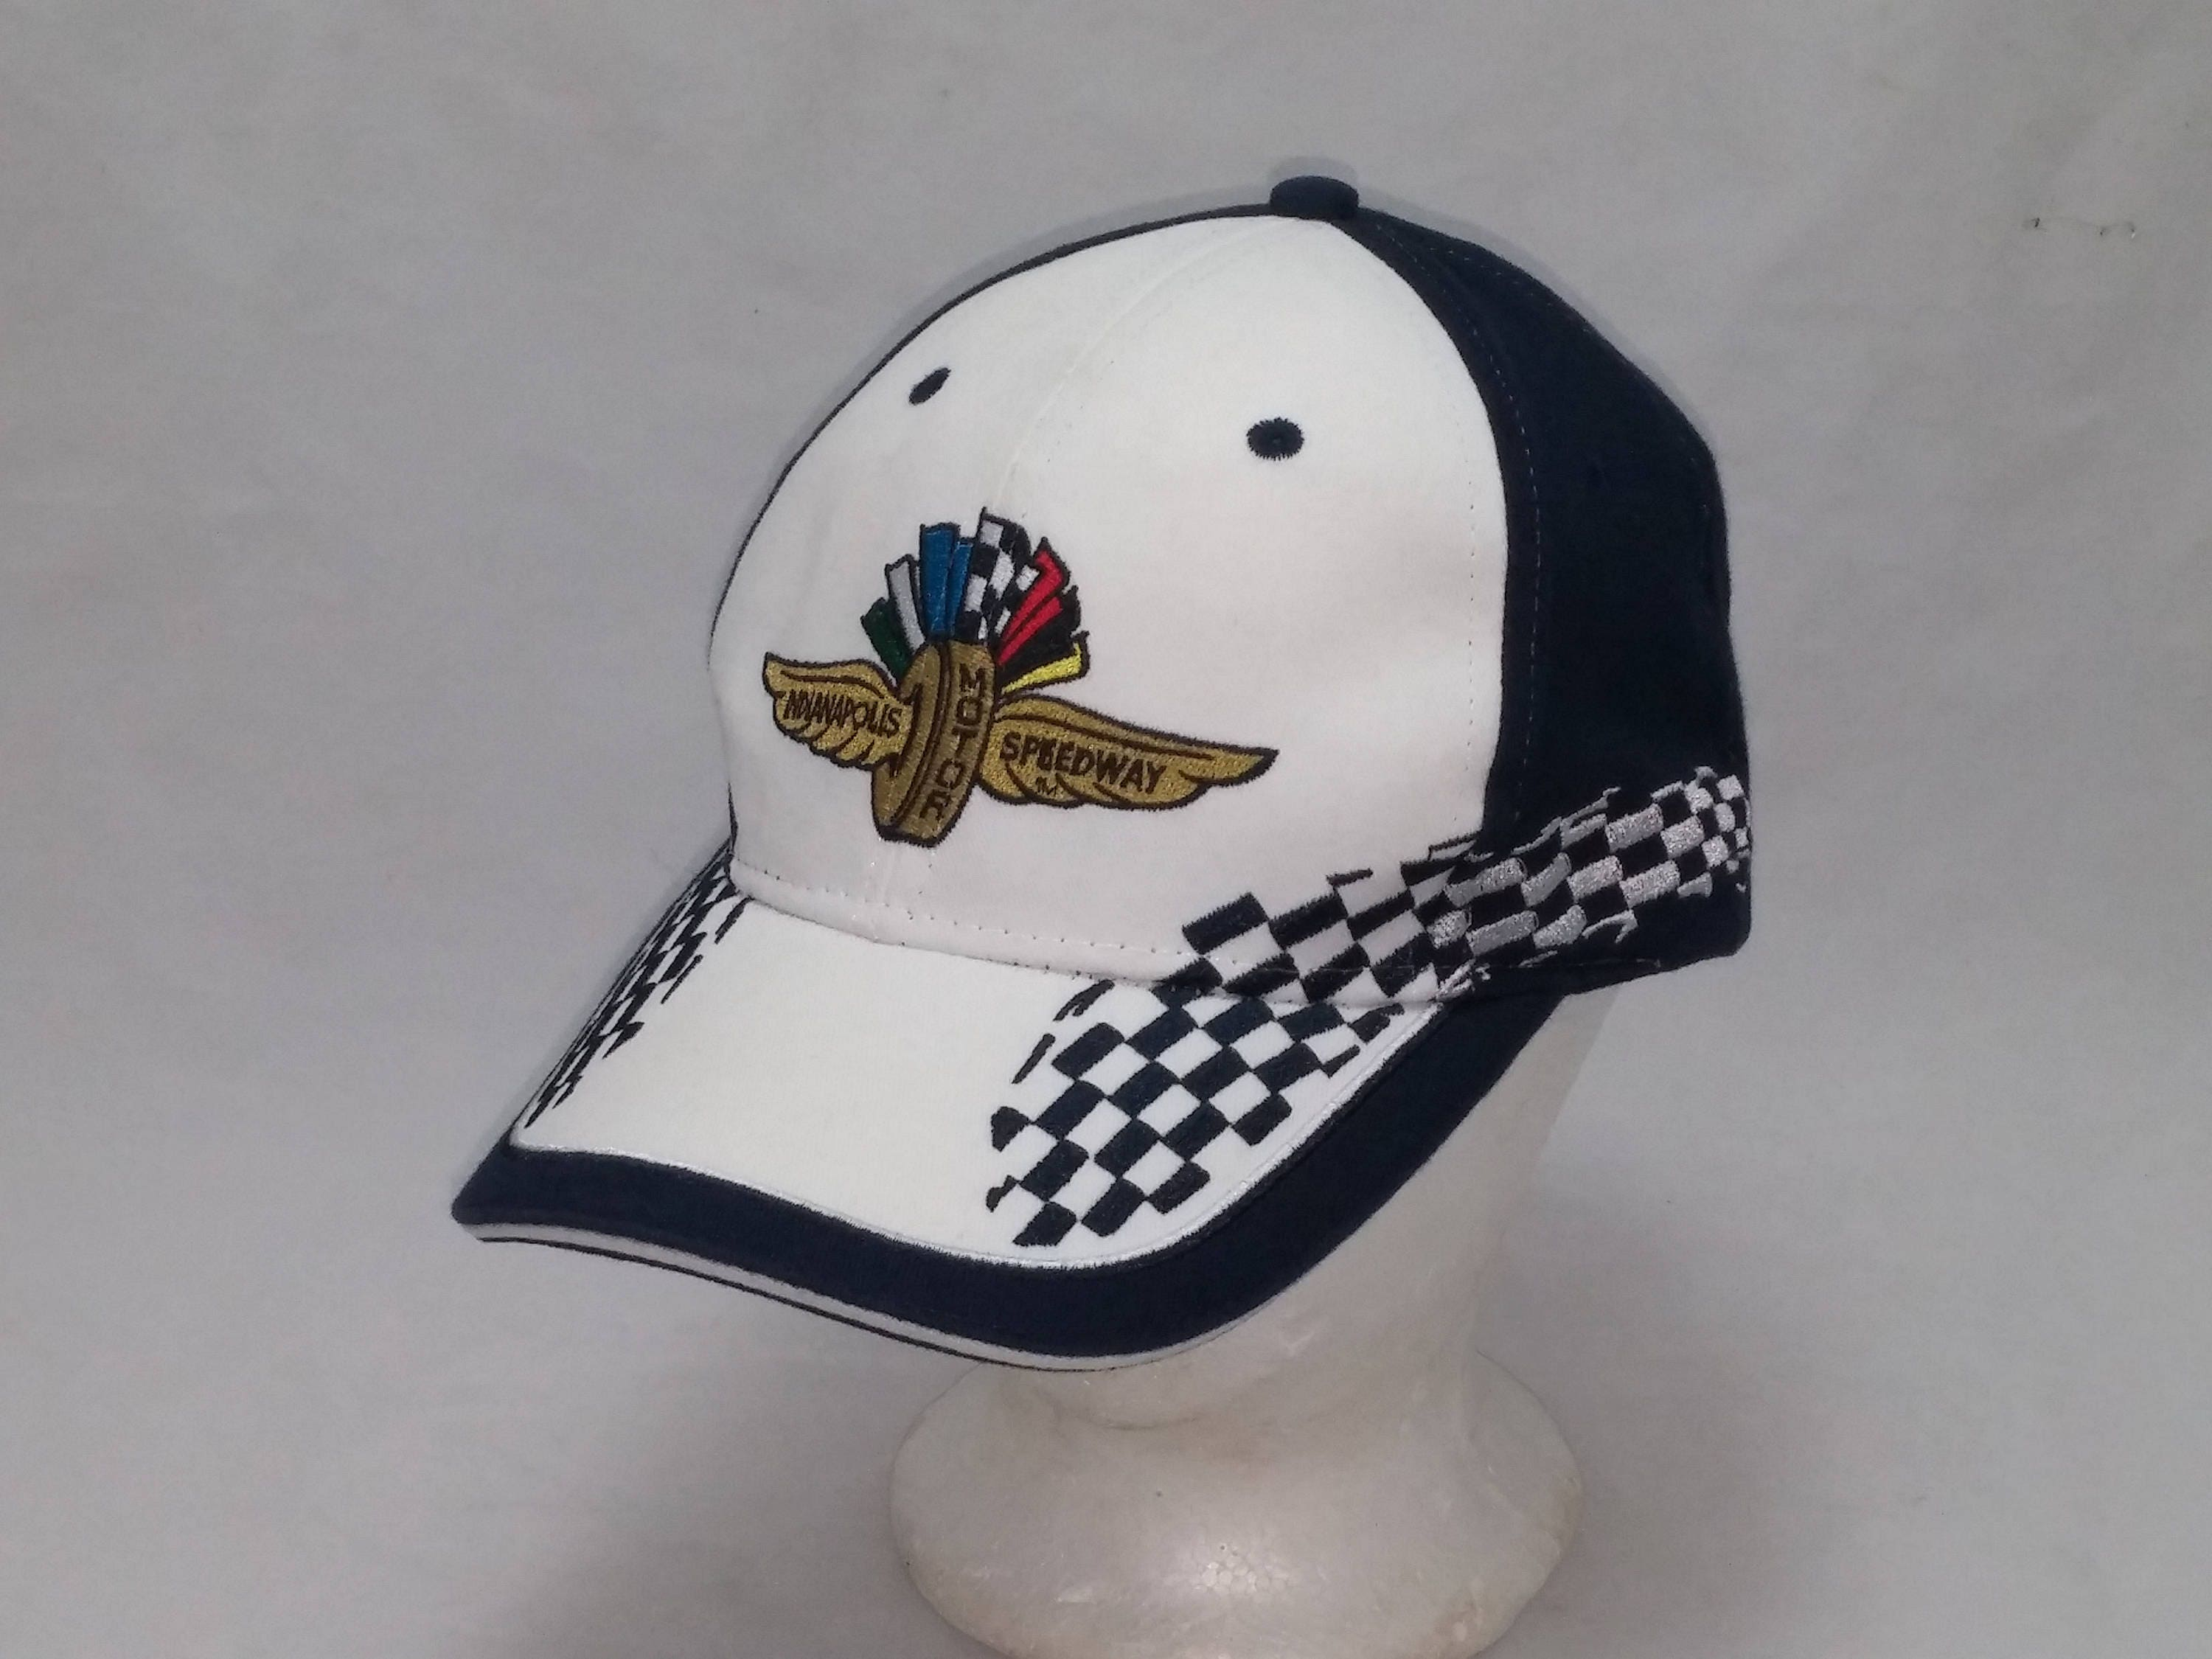 14bf4f027 Vintage 1990s Trucker Ball Cap - Indianapolis Motor Speedway - Hipster,  Rockabilly, Gearhead, NASCAR, Retro, Accessories